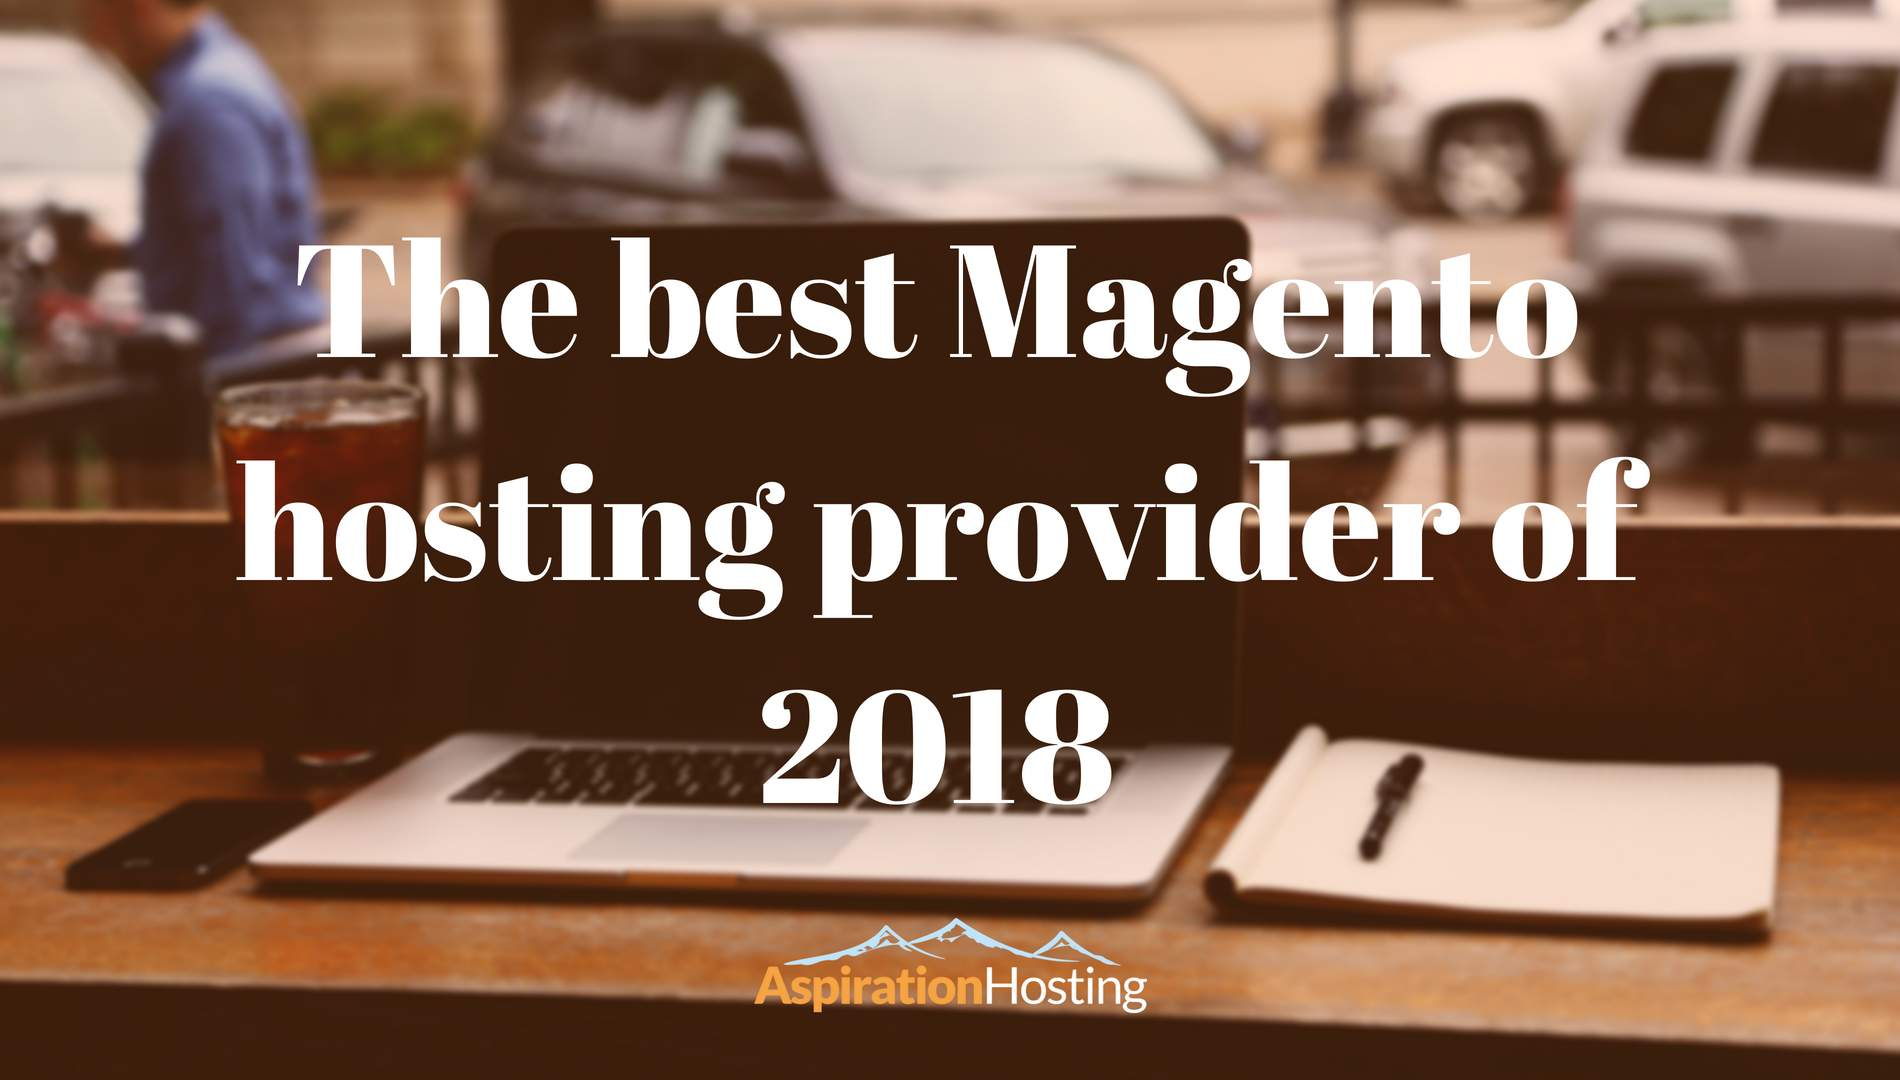 The best Magento hosting provider of 2018 - Aspiration Hosting